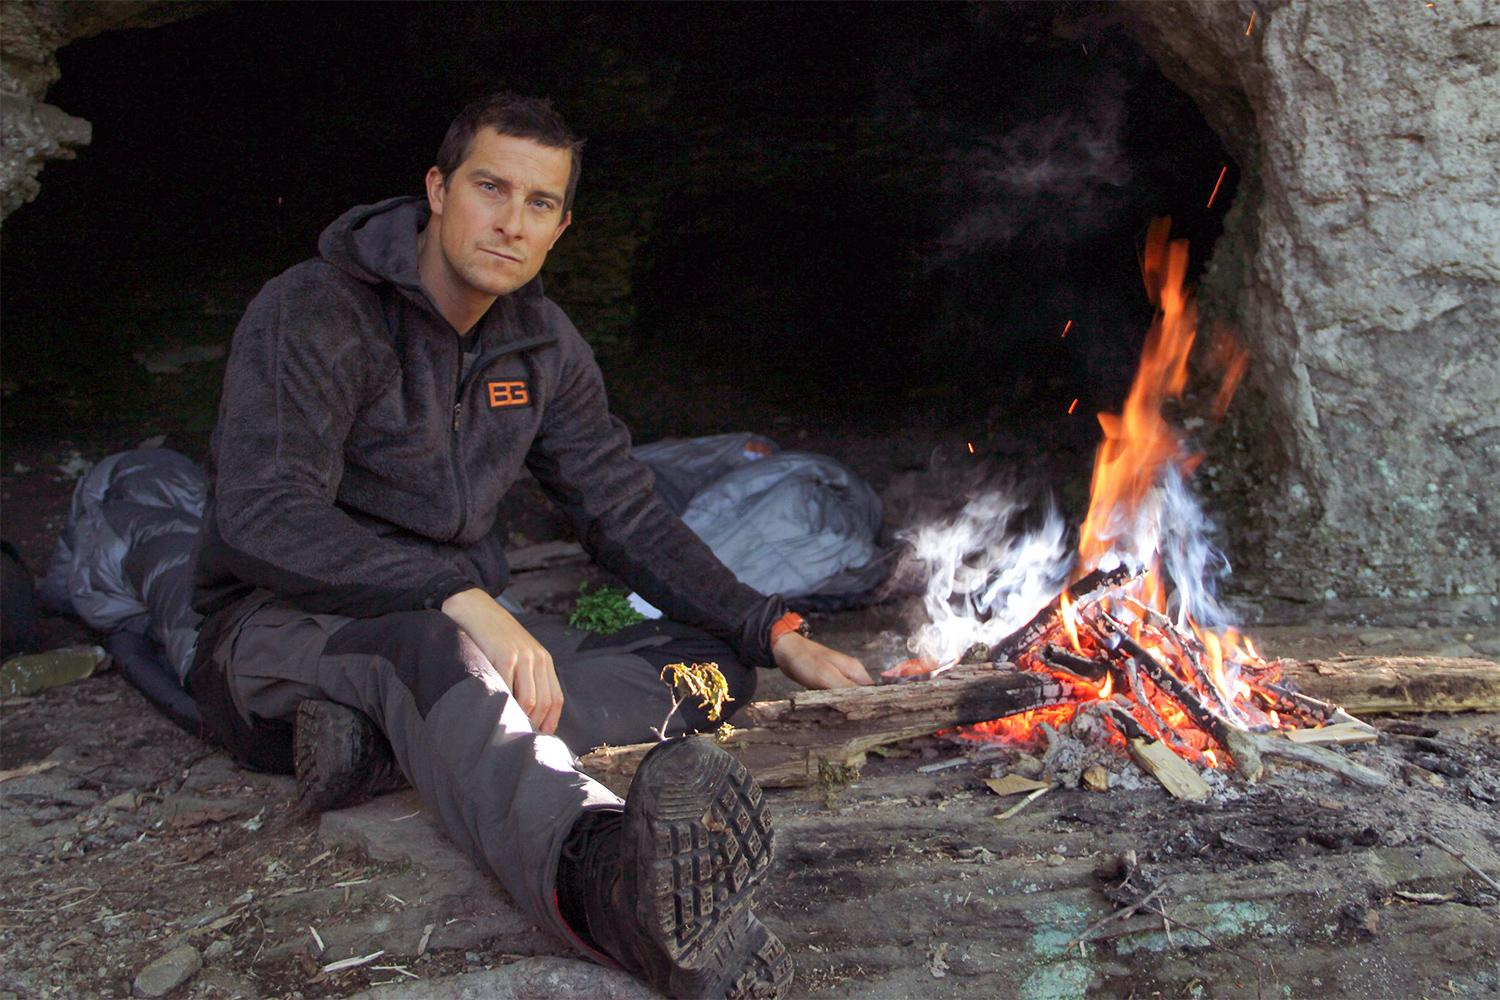 Bear Grylls Backgrounds, Compatible - PC, Mobile, Gadgets| 1500x1000 px